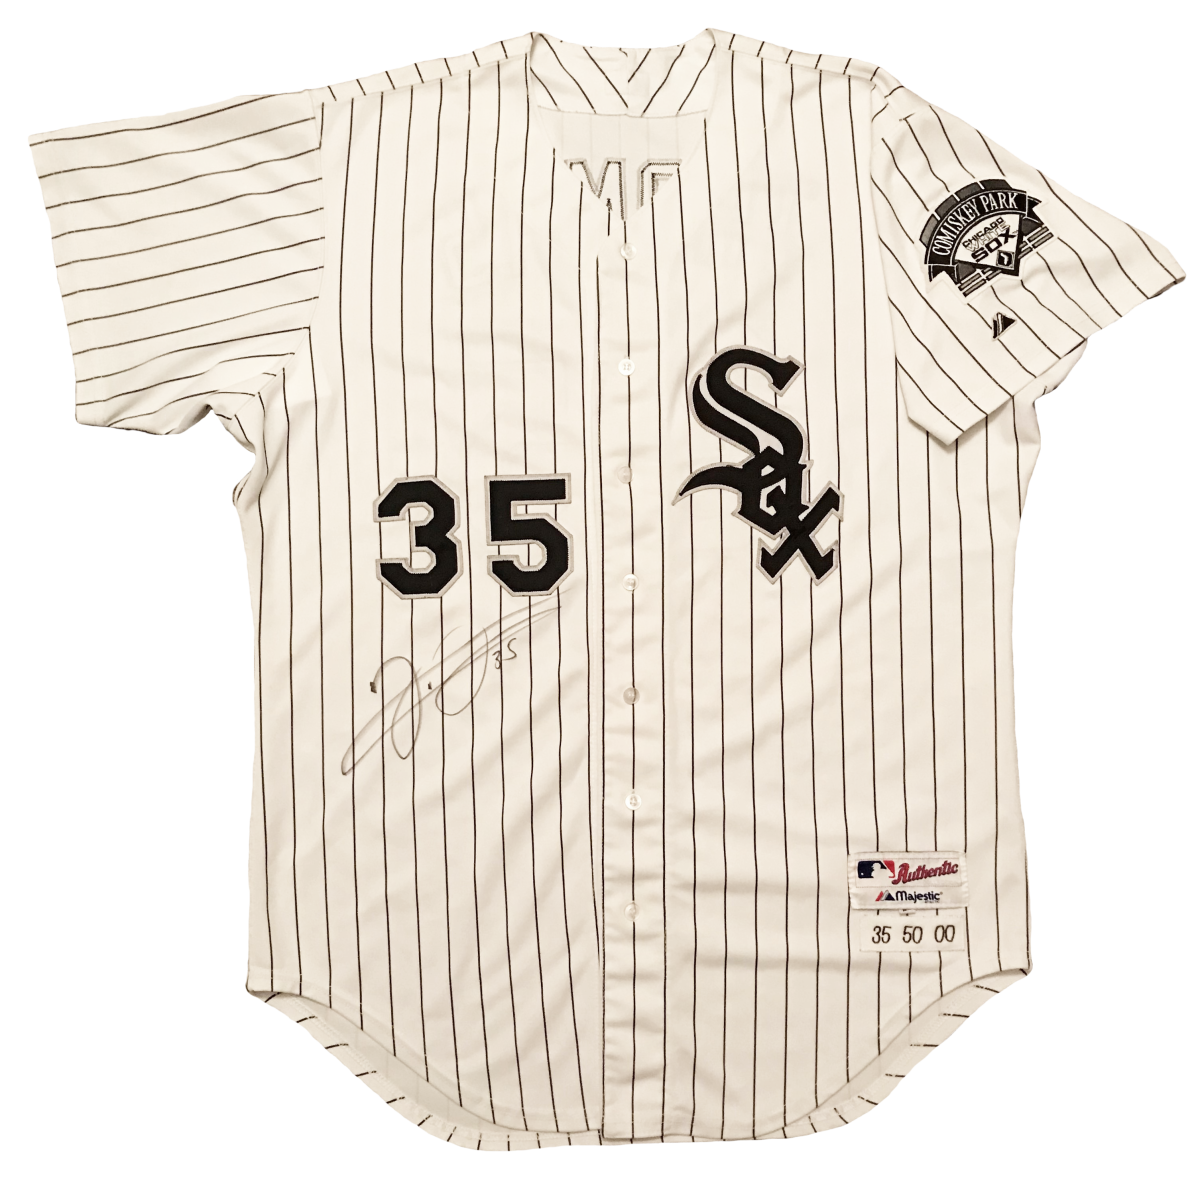 Frank Thomas jersey photomatched to the 2000 ALDS.